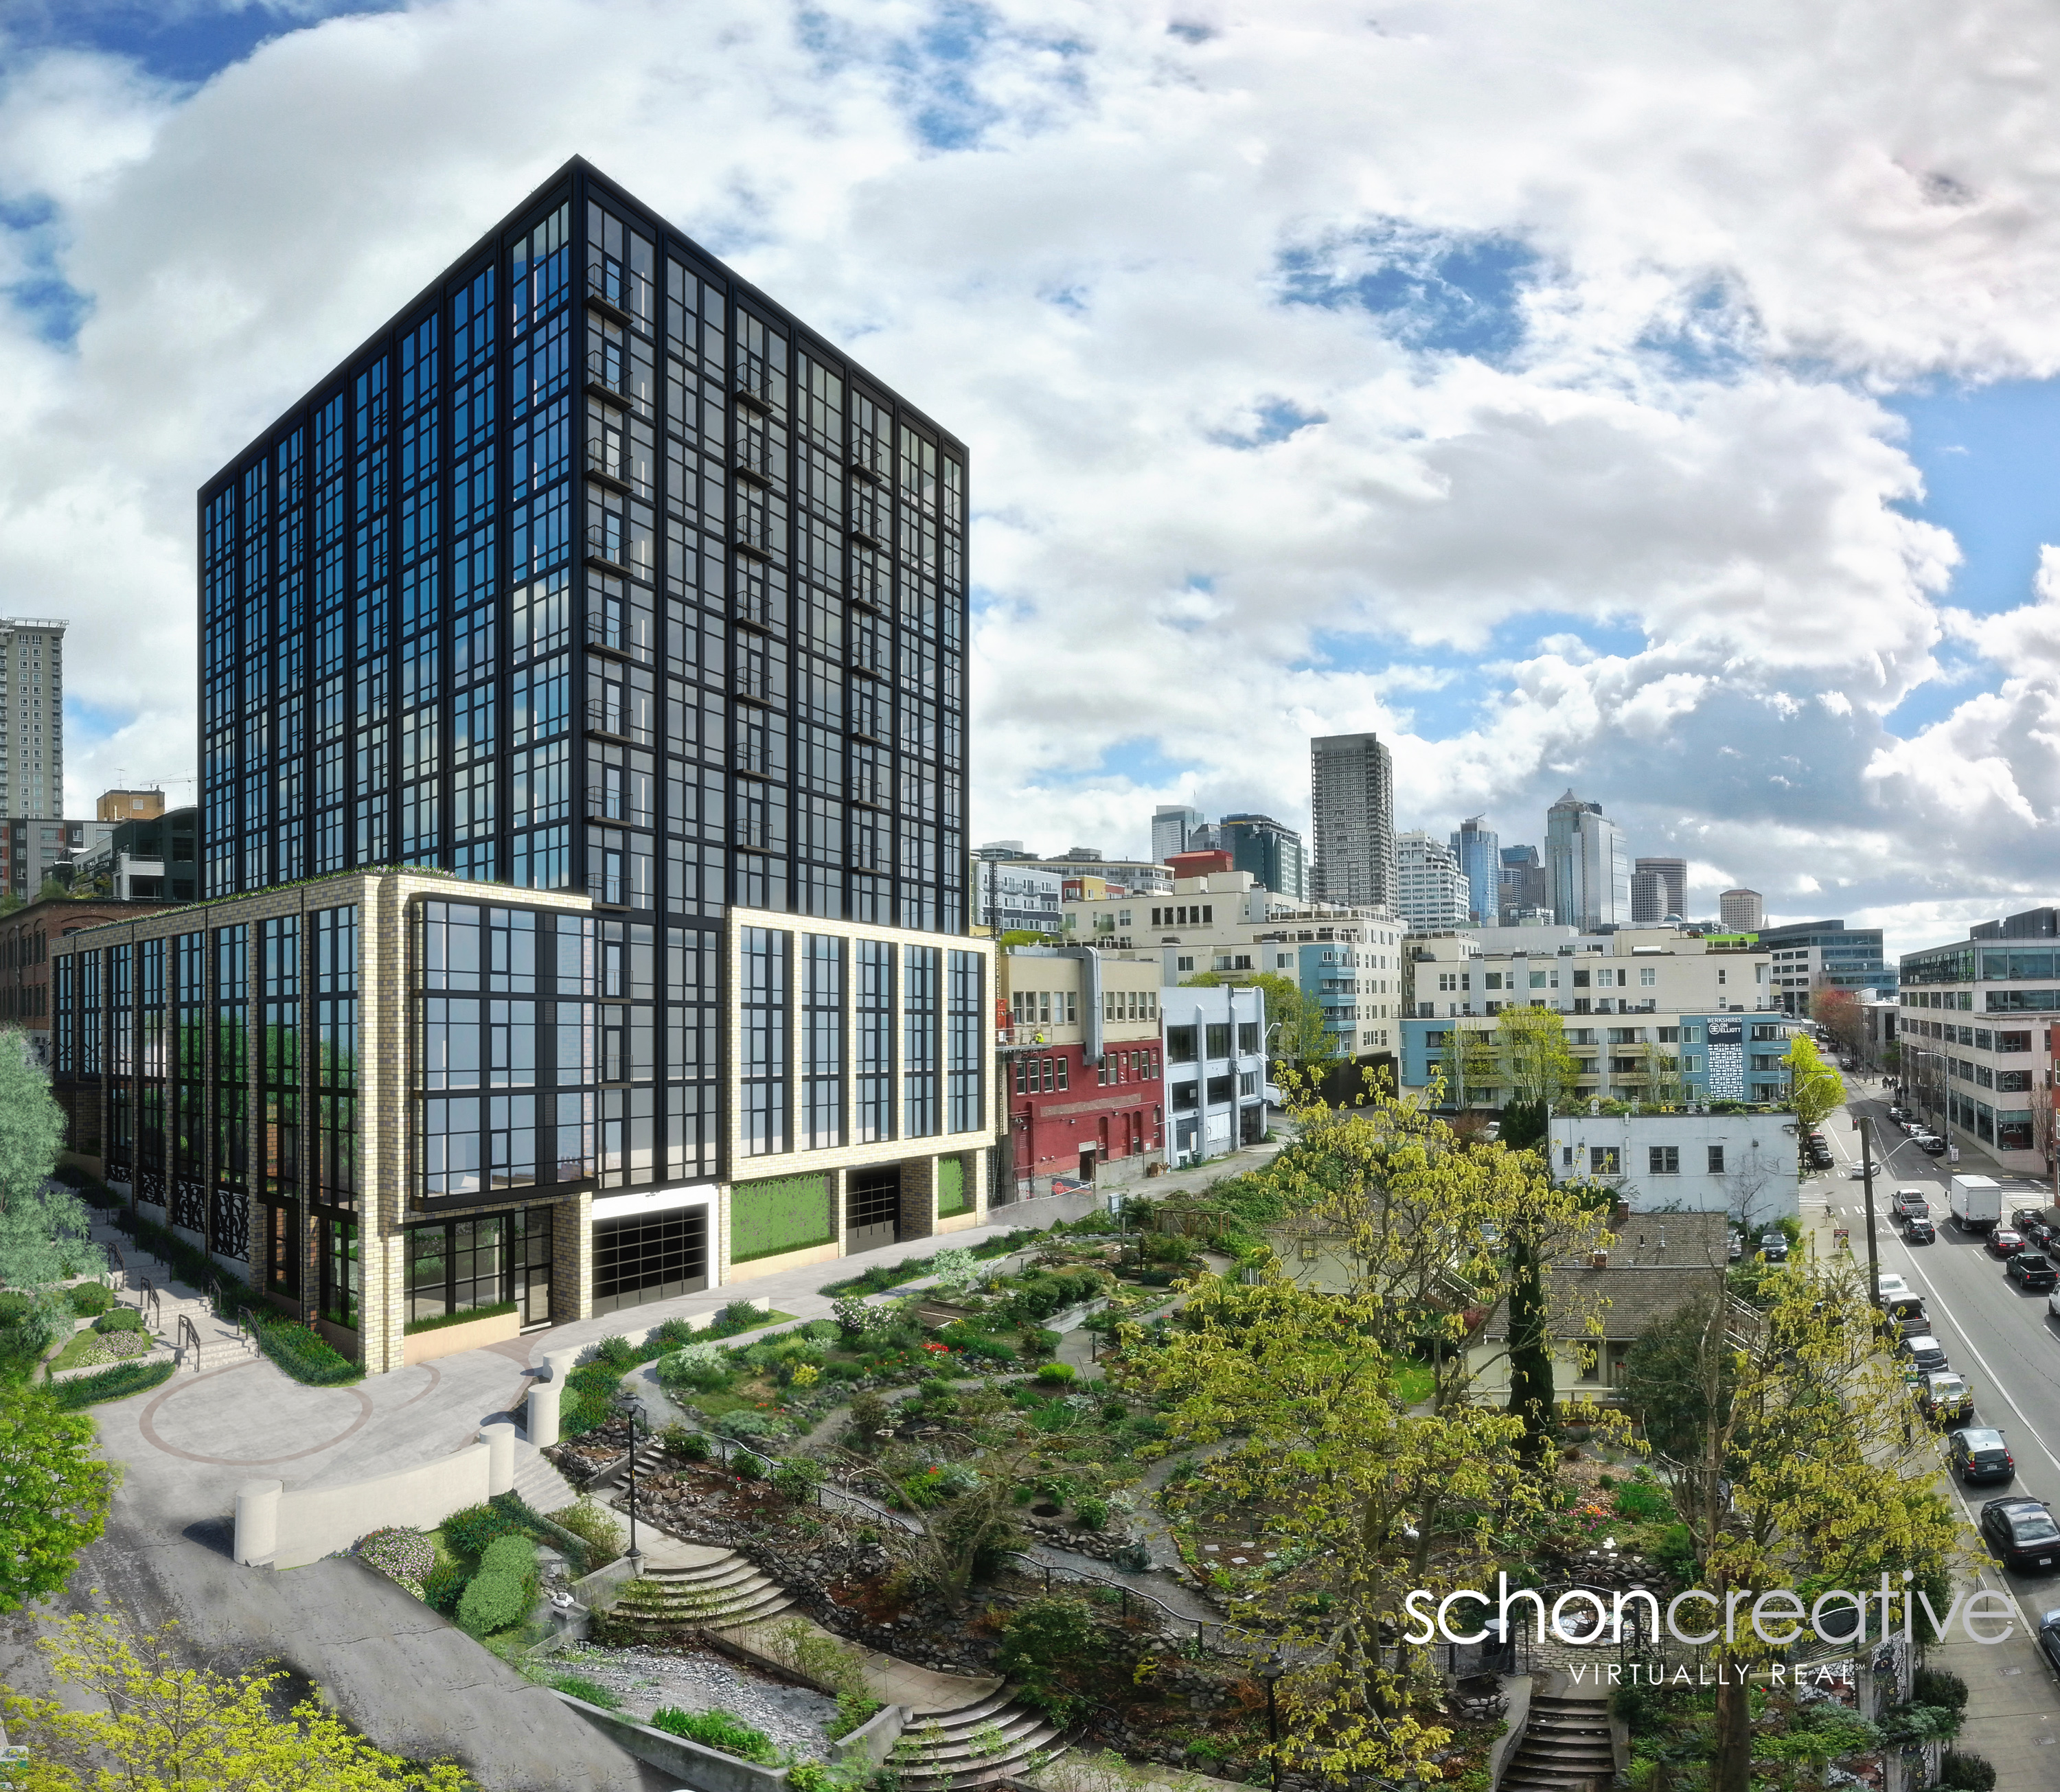 Towers Of Channelside Floor Plans: Schon Creative Animation - Virtually Real Since 1999